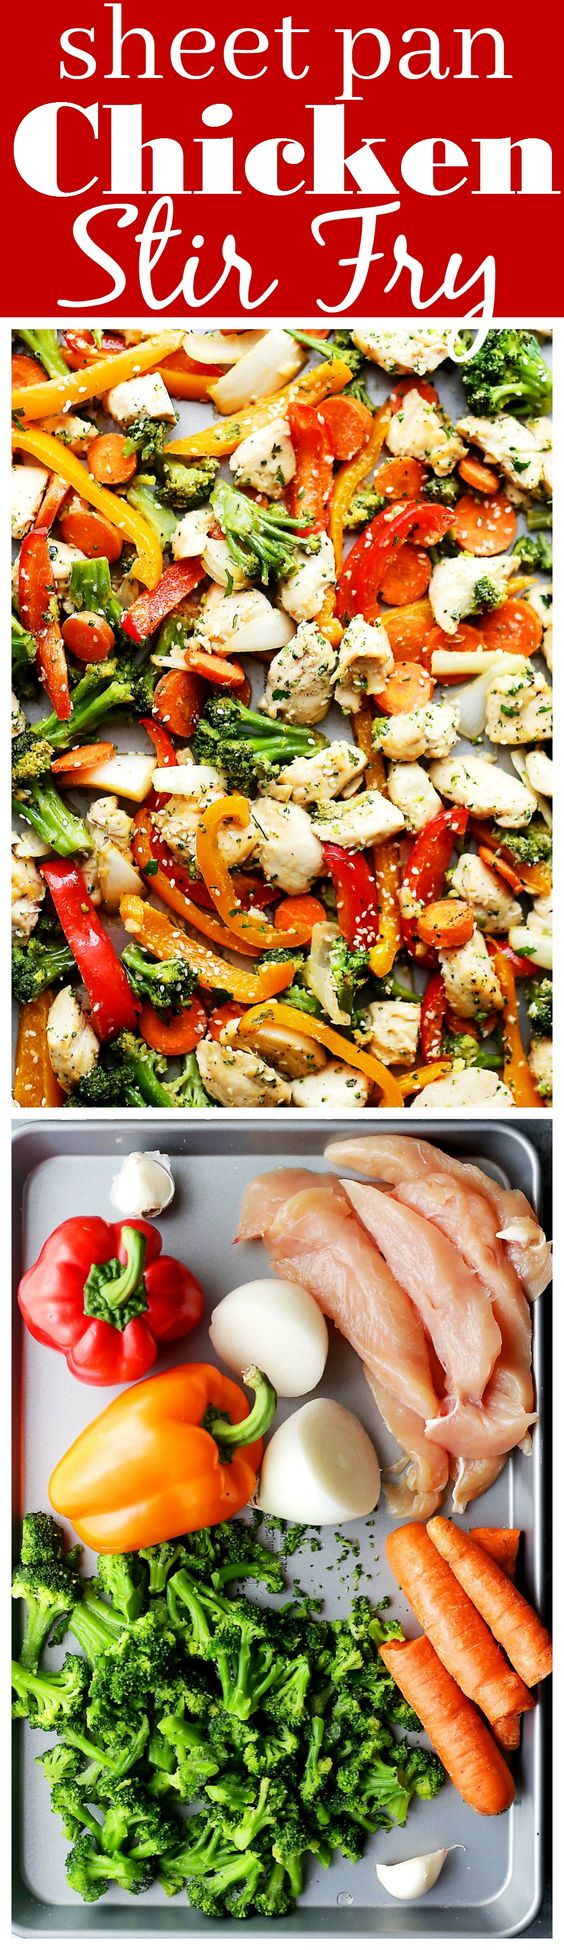 "Sheet Pan Chicken ""Stir Fry"" Recipe via Diethood - Just one pan and 30 minutes is all you will need to make this amazing meal! Skip the wok and make this quick and healthy chicken stir fry dinner in the oven!"